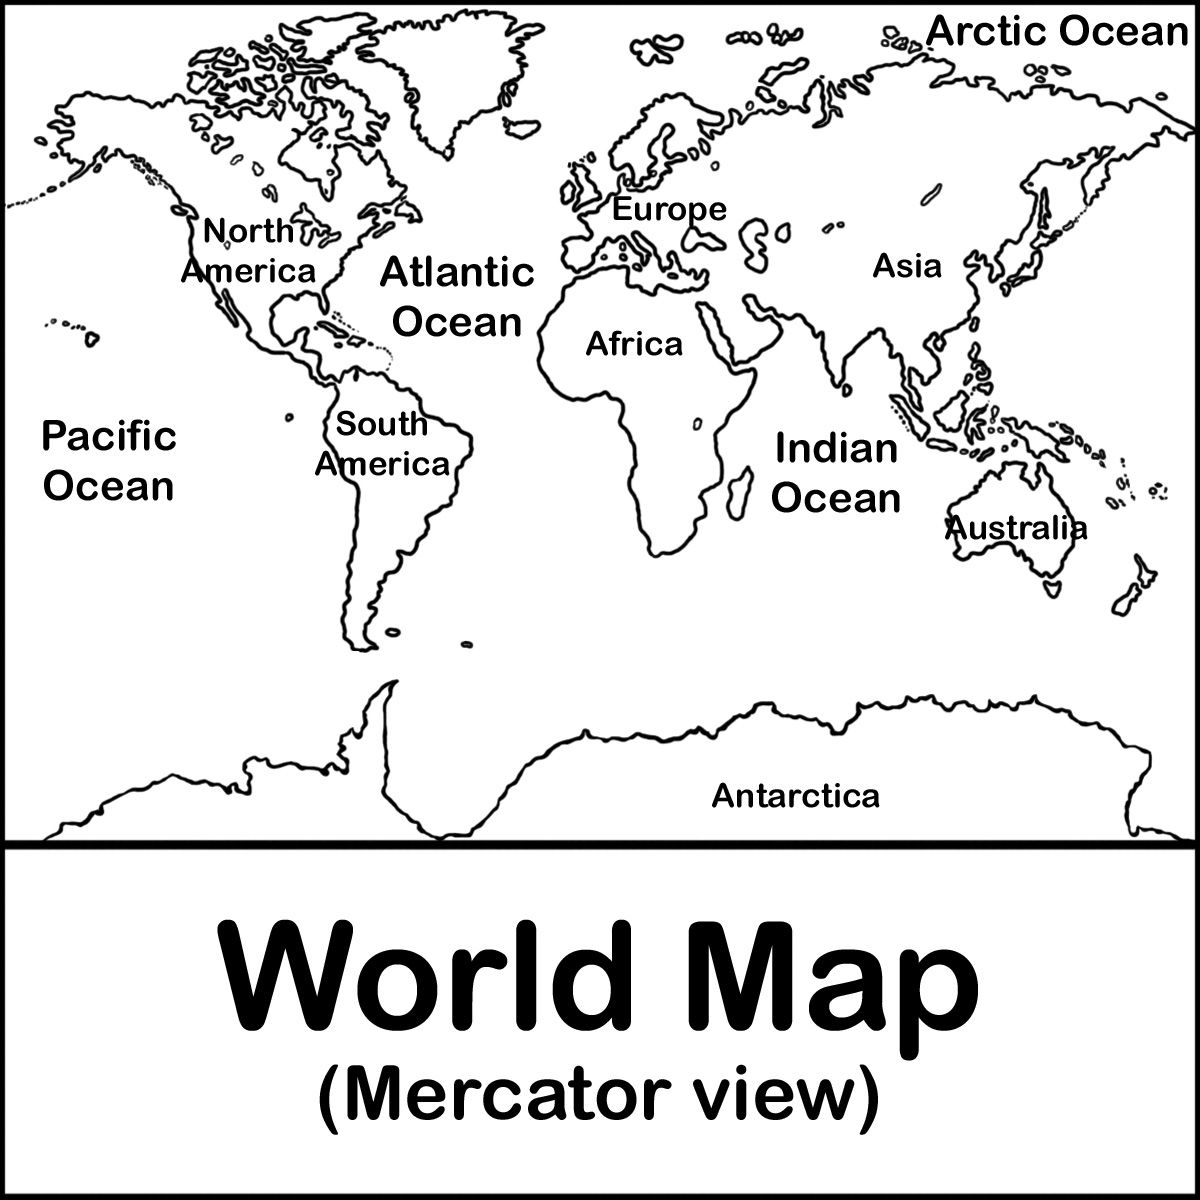 Colouring in world map - Map For Vietnam Colouring Pages World Thinking Day Pinterest